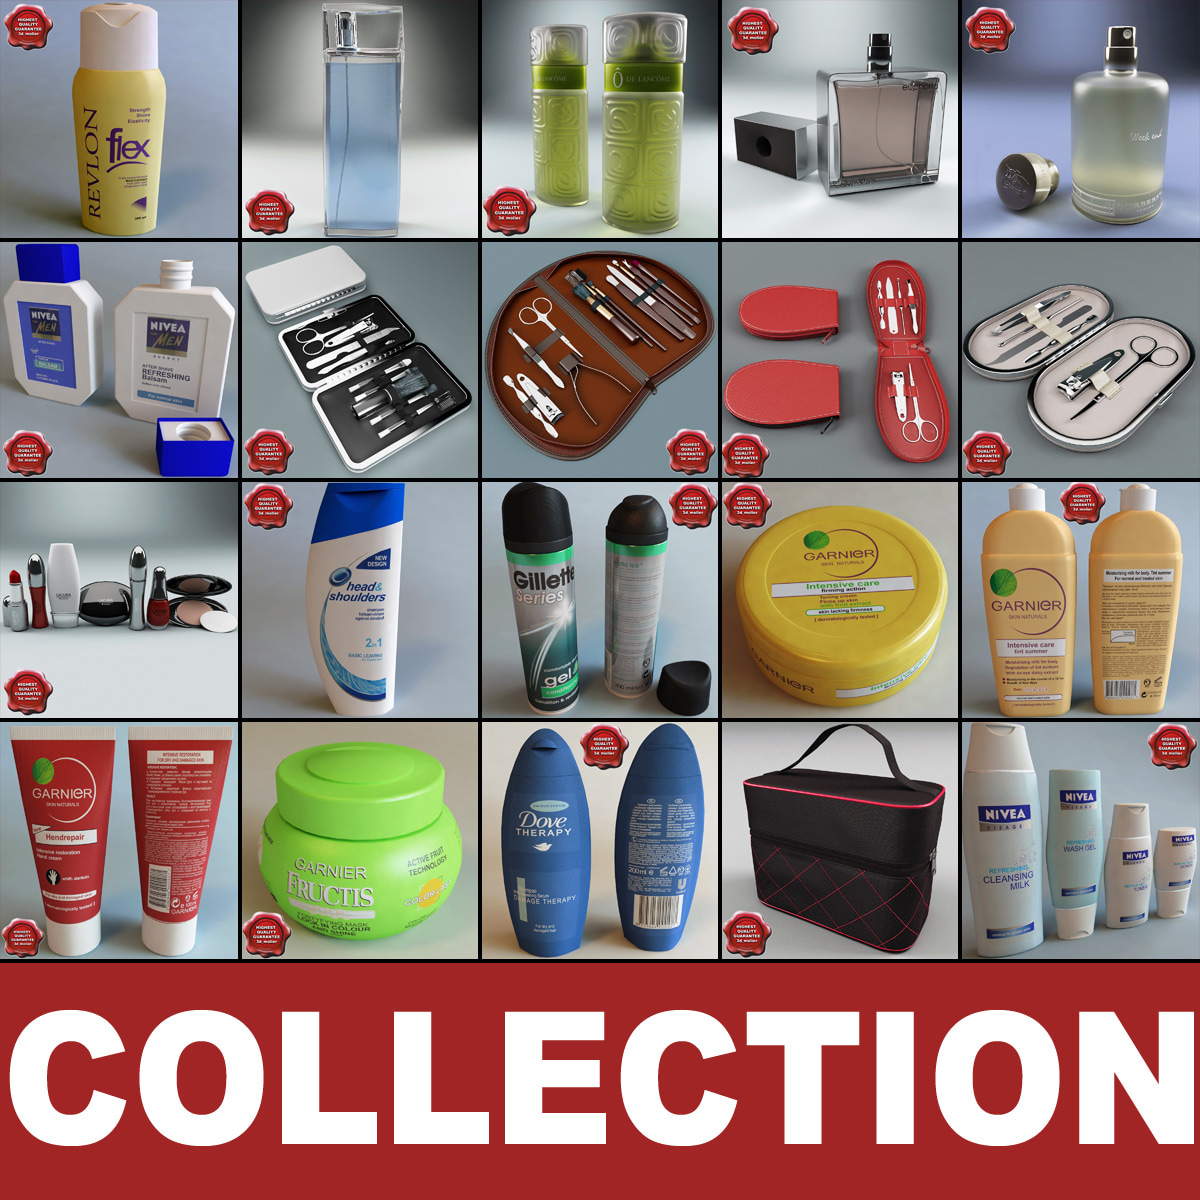 Cosmetics_Collection_000.jpg